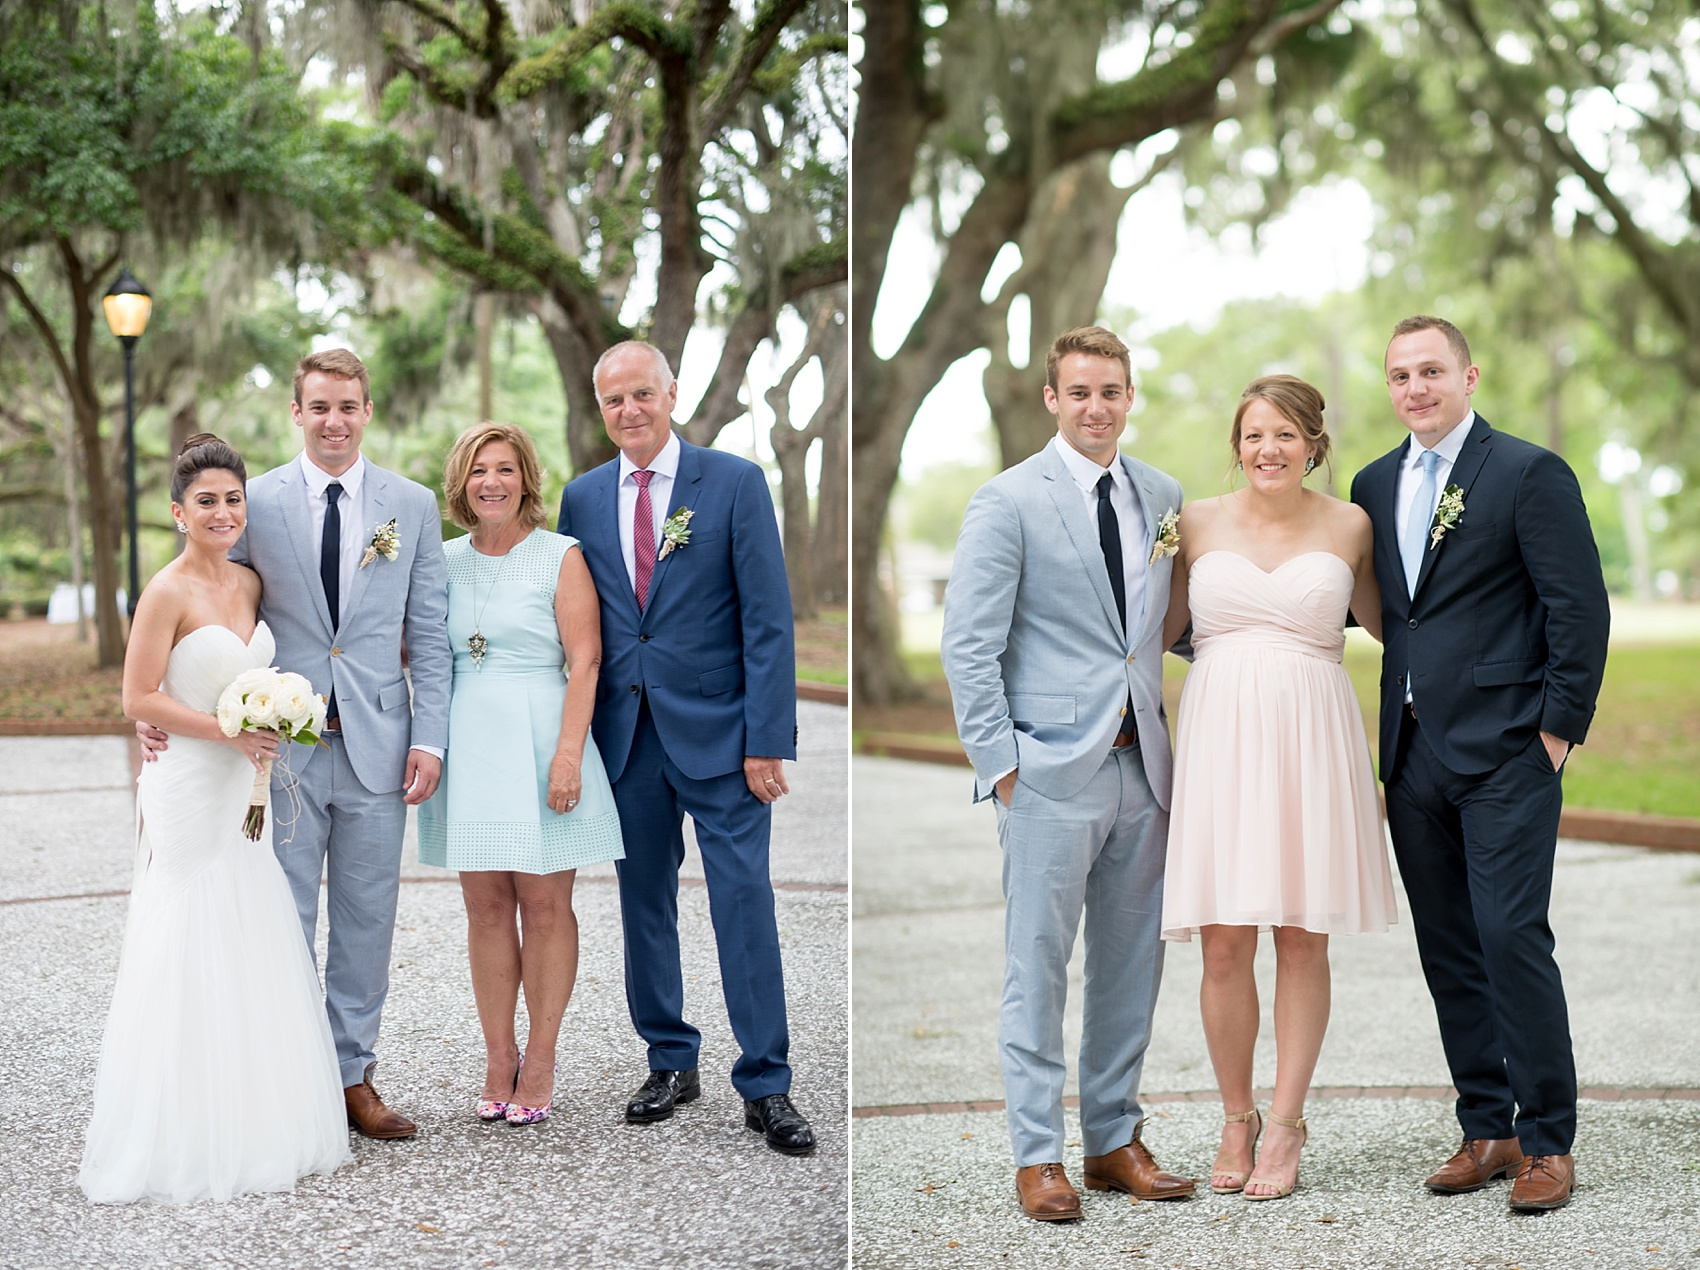 Family photos amidst Spanish Moss for a Haig Point wedding in South Carolina, off the coast of Hilton Head. Photos by Mikkel Paige Photography.